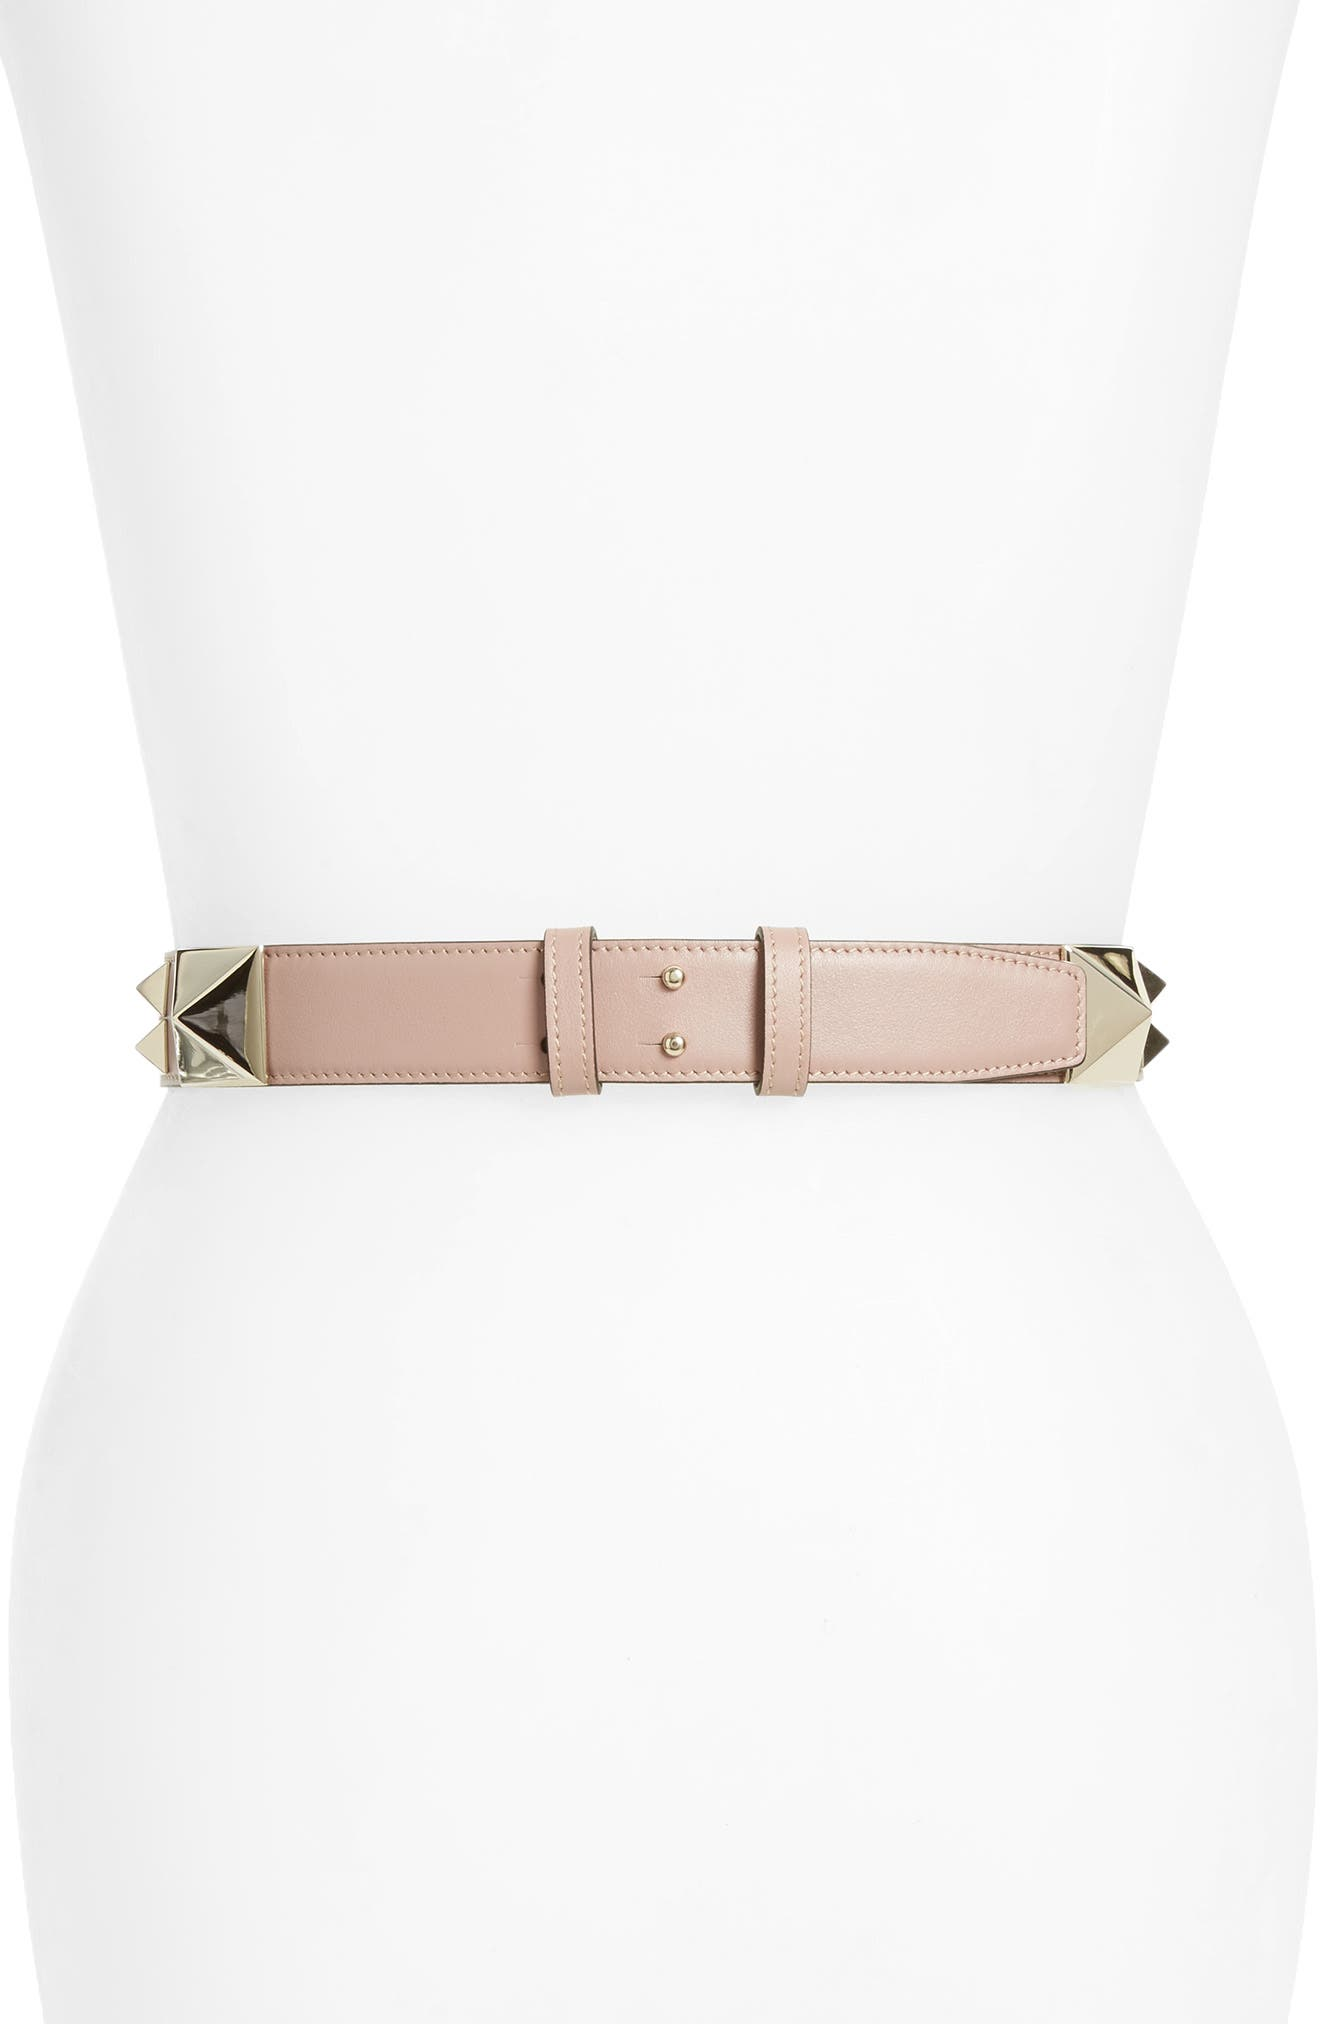 GARAVANI Lovestud Calfskin Leather Belt,                             Alternate thumbnail 2, color,                             Poudre